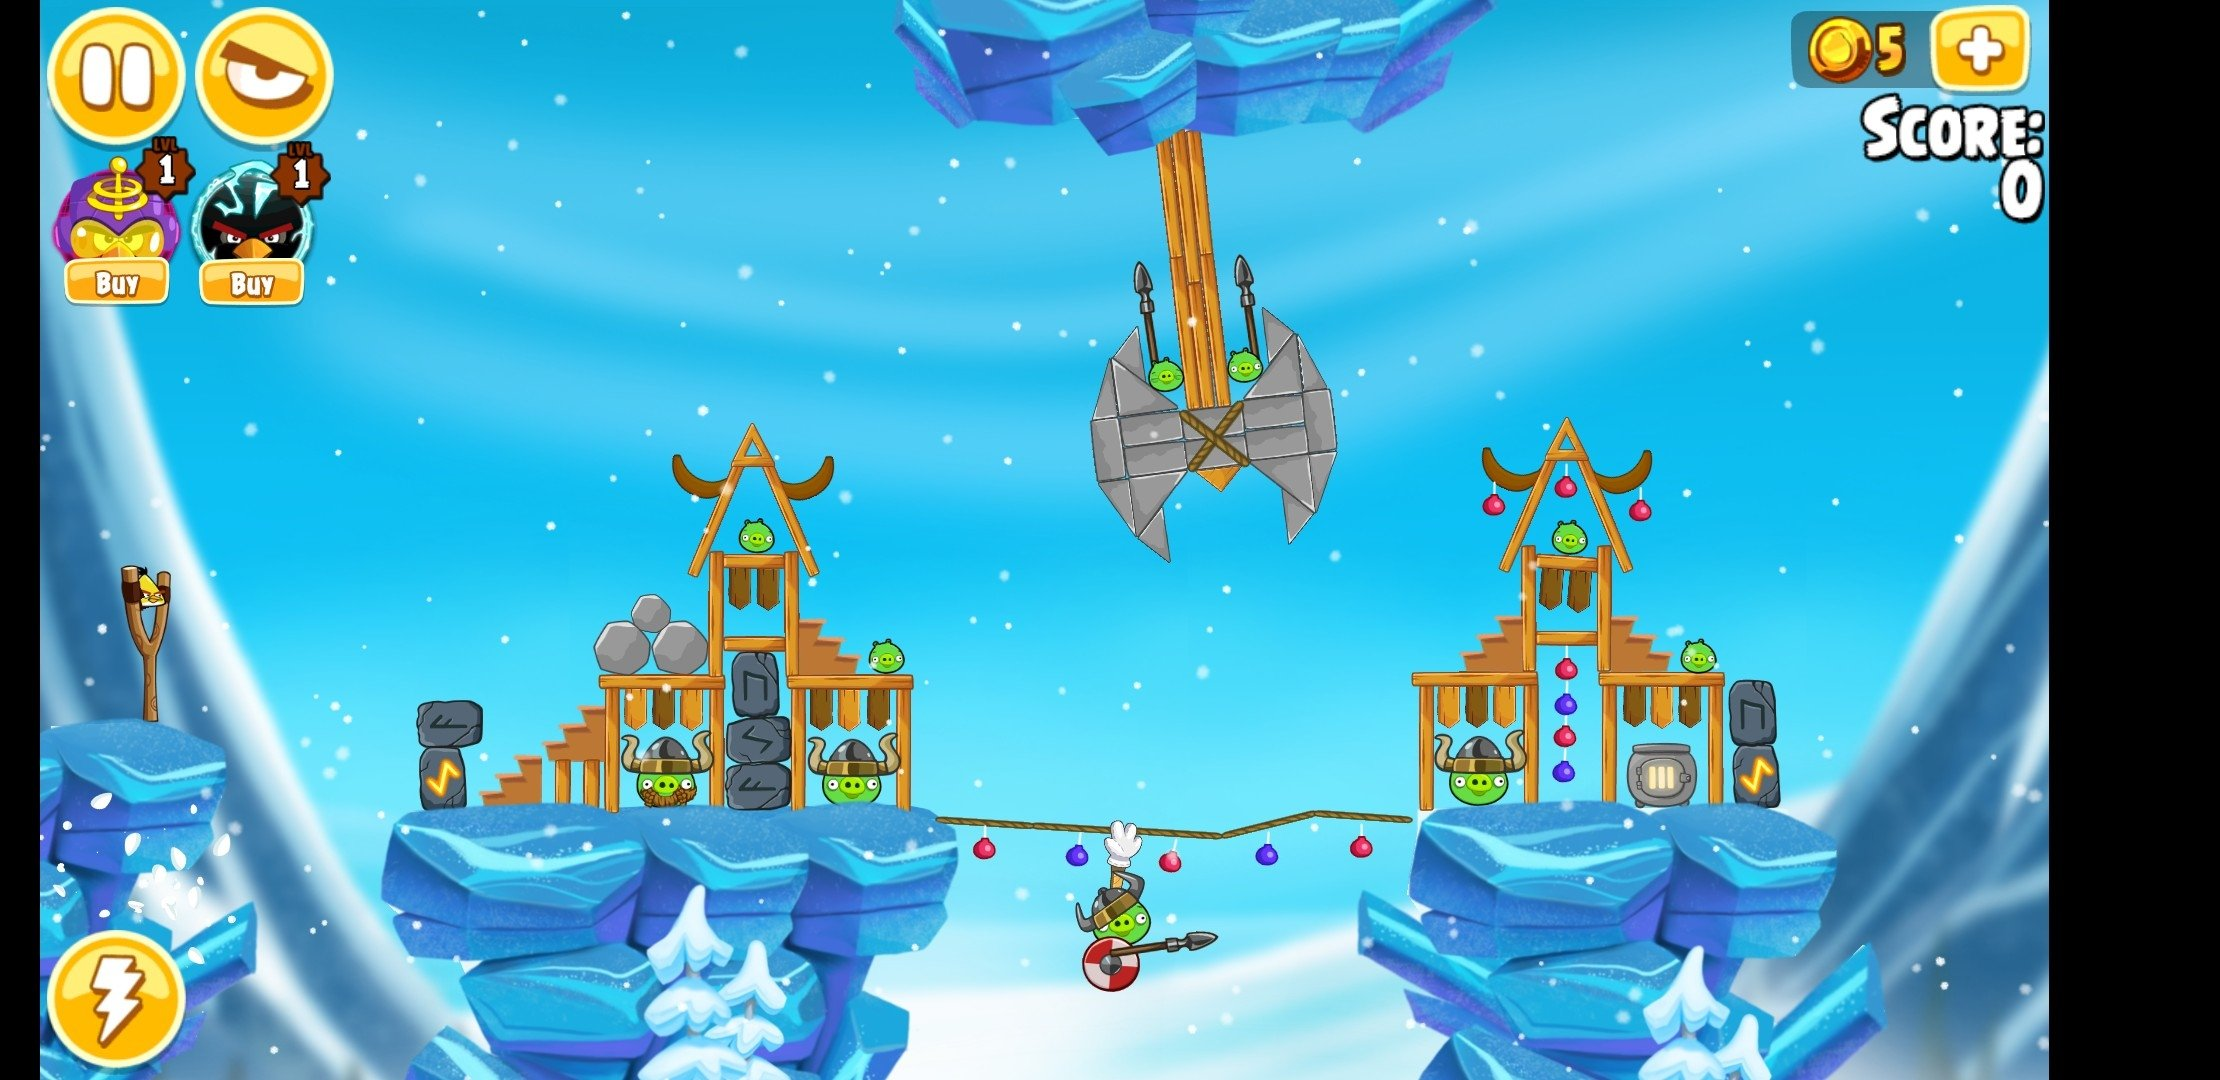 Angry Birds Seasons Android image 5